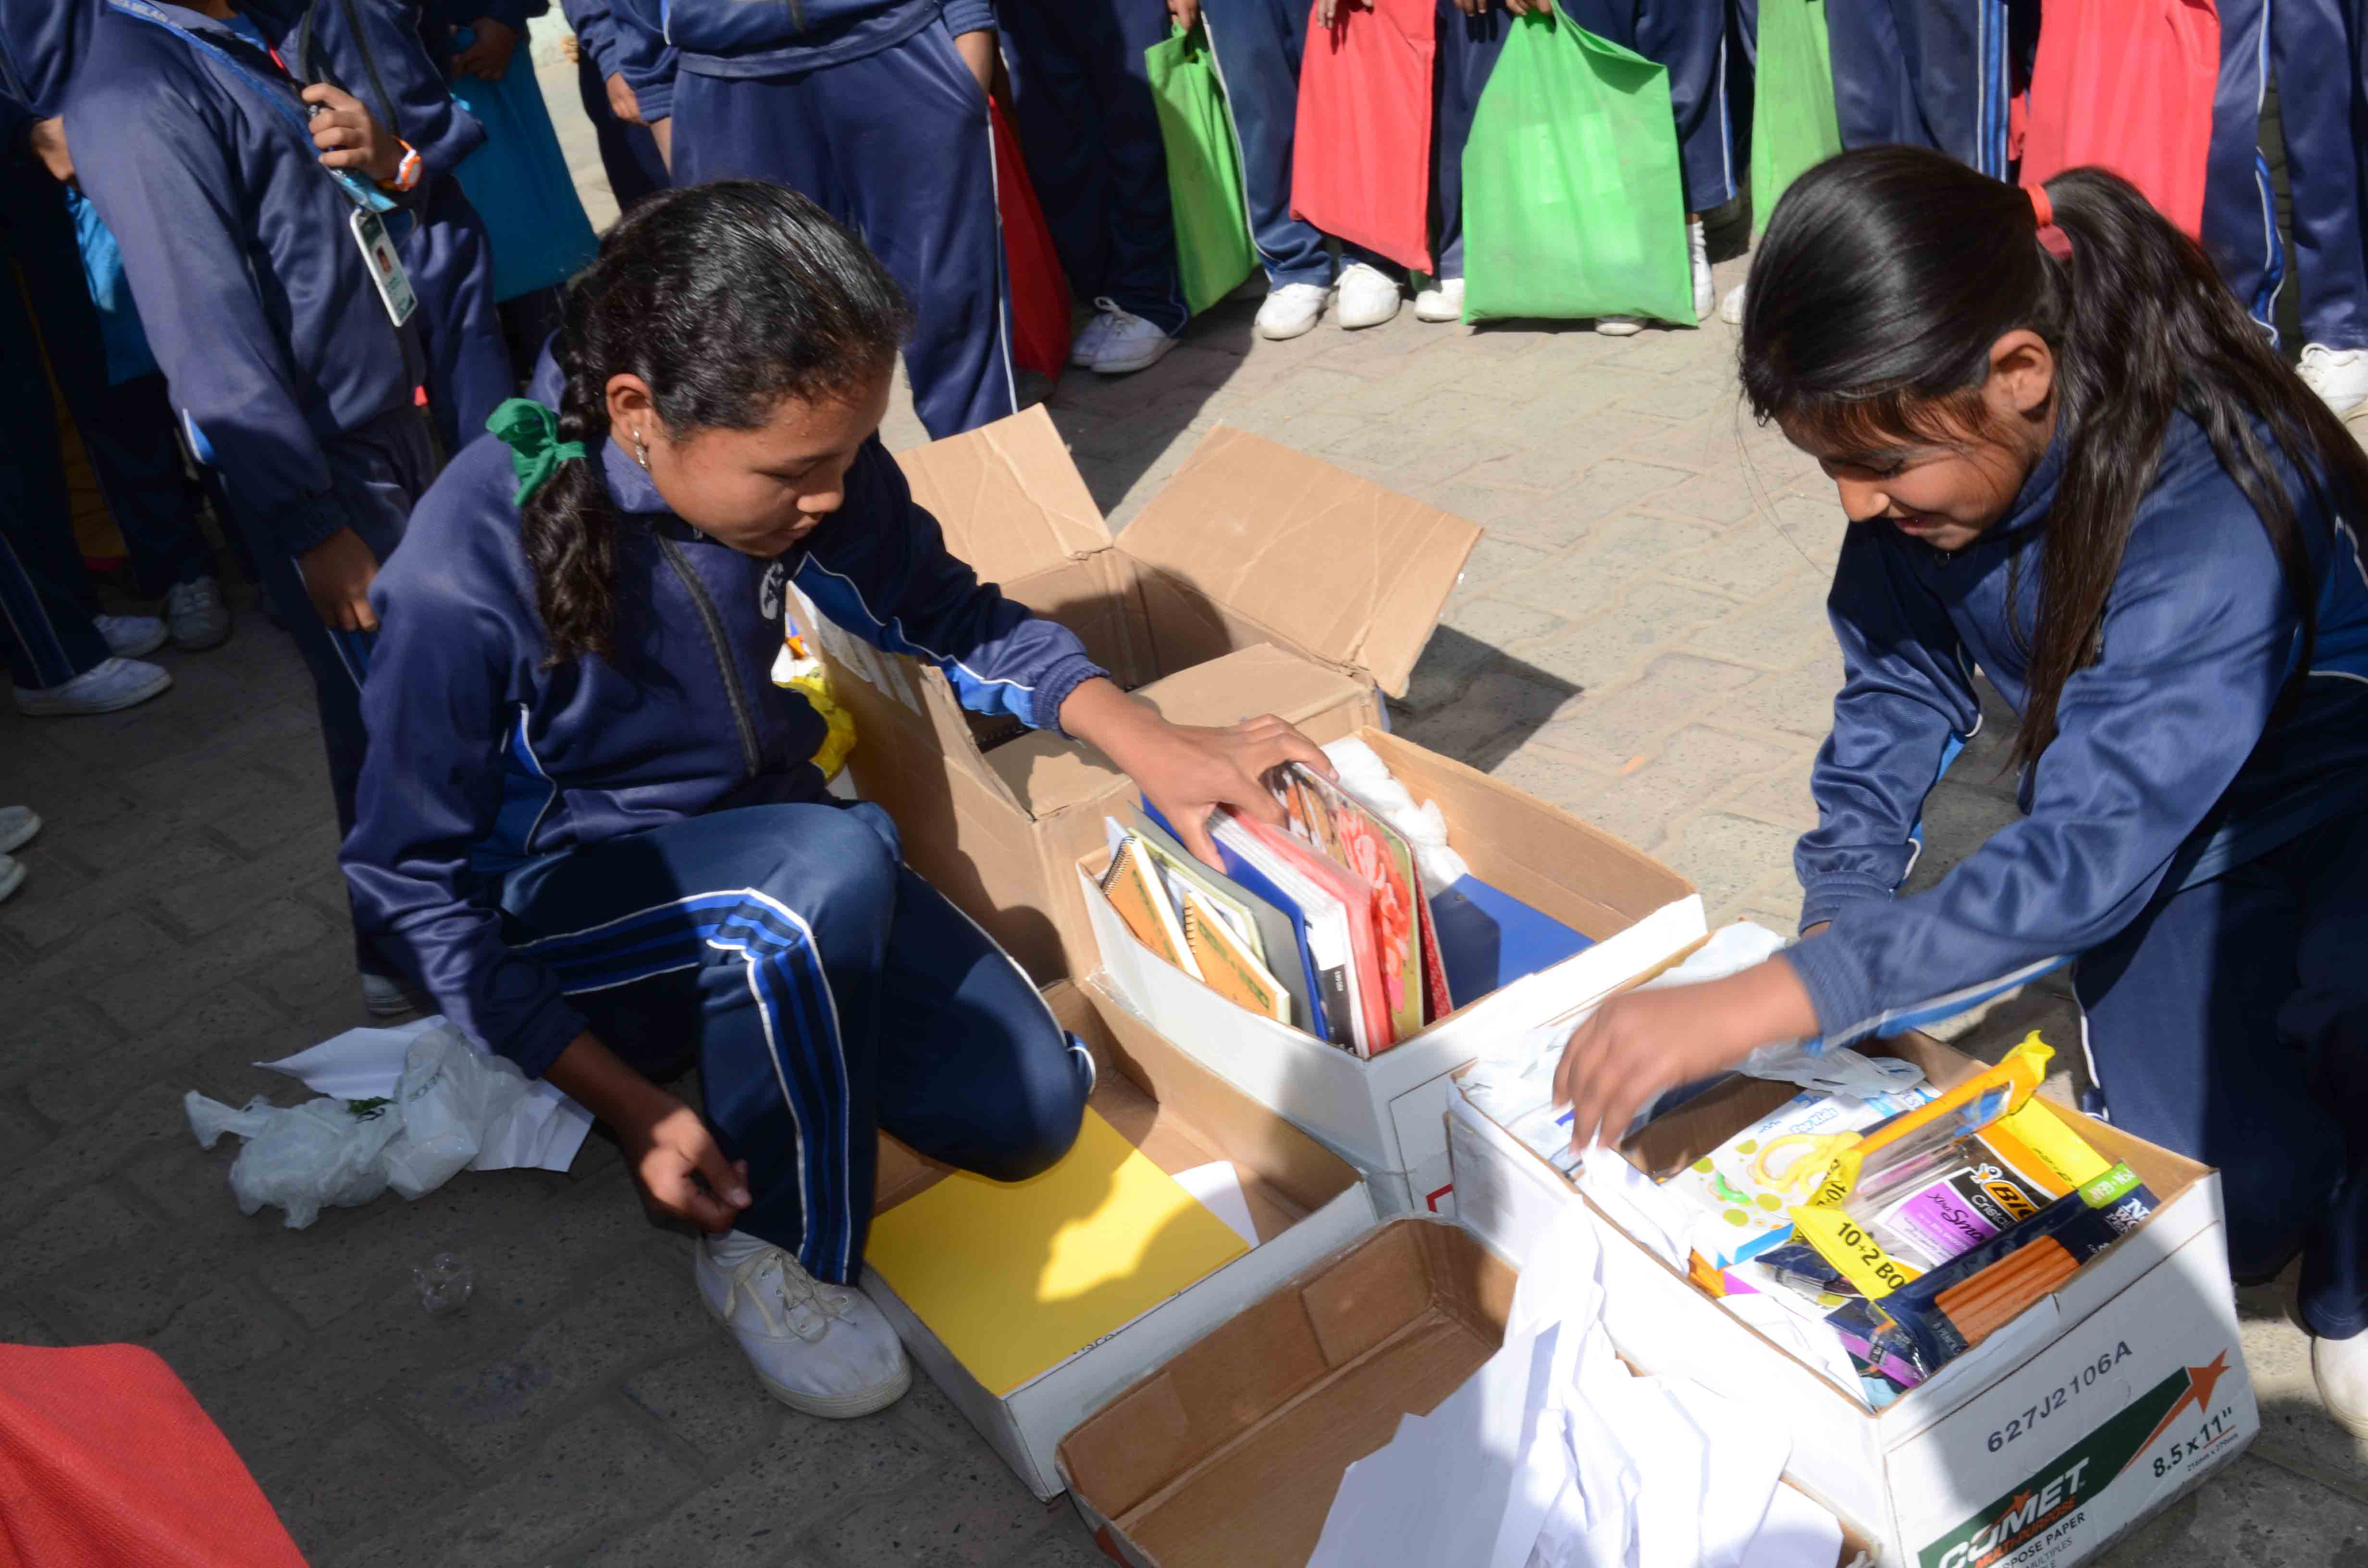 Nepal students open boxes of school supplies